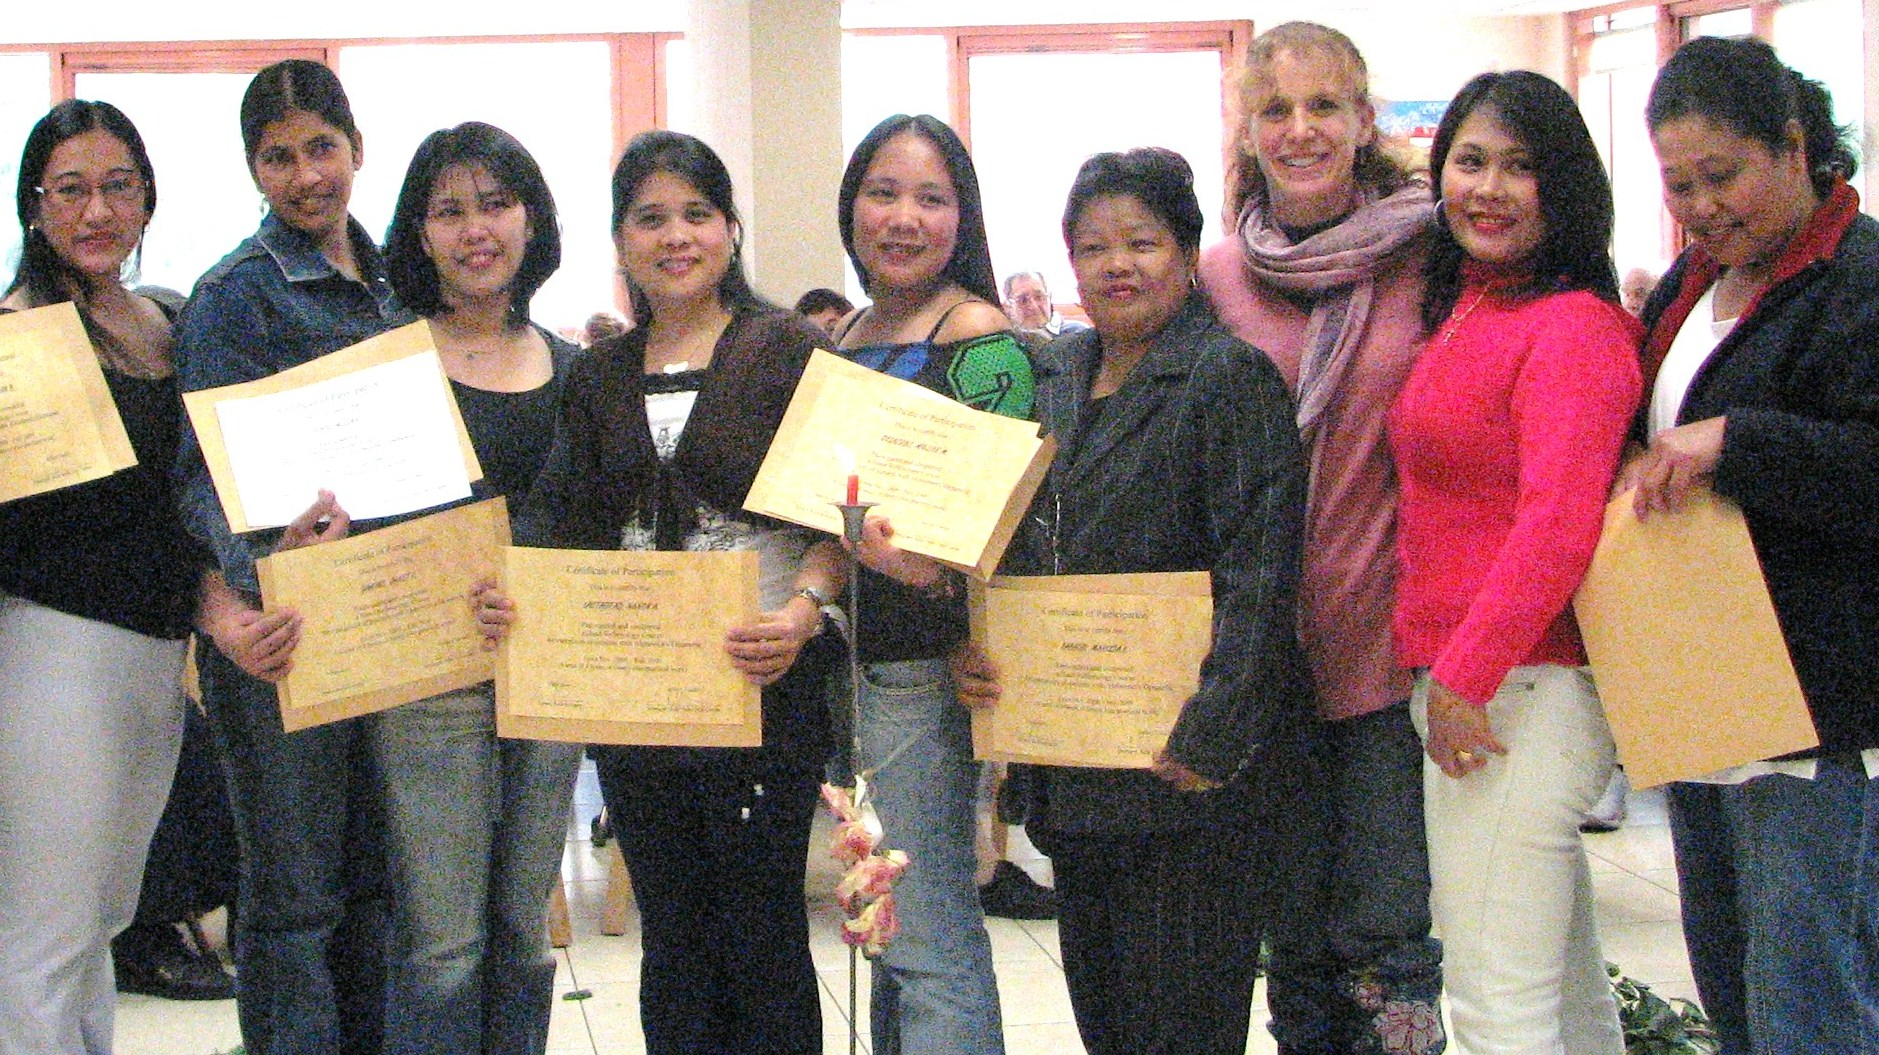 Graduation of first caregiver's class